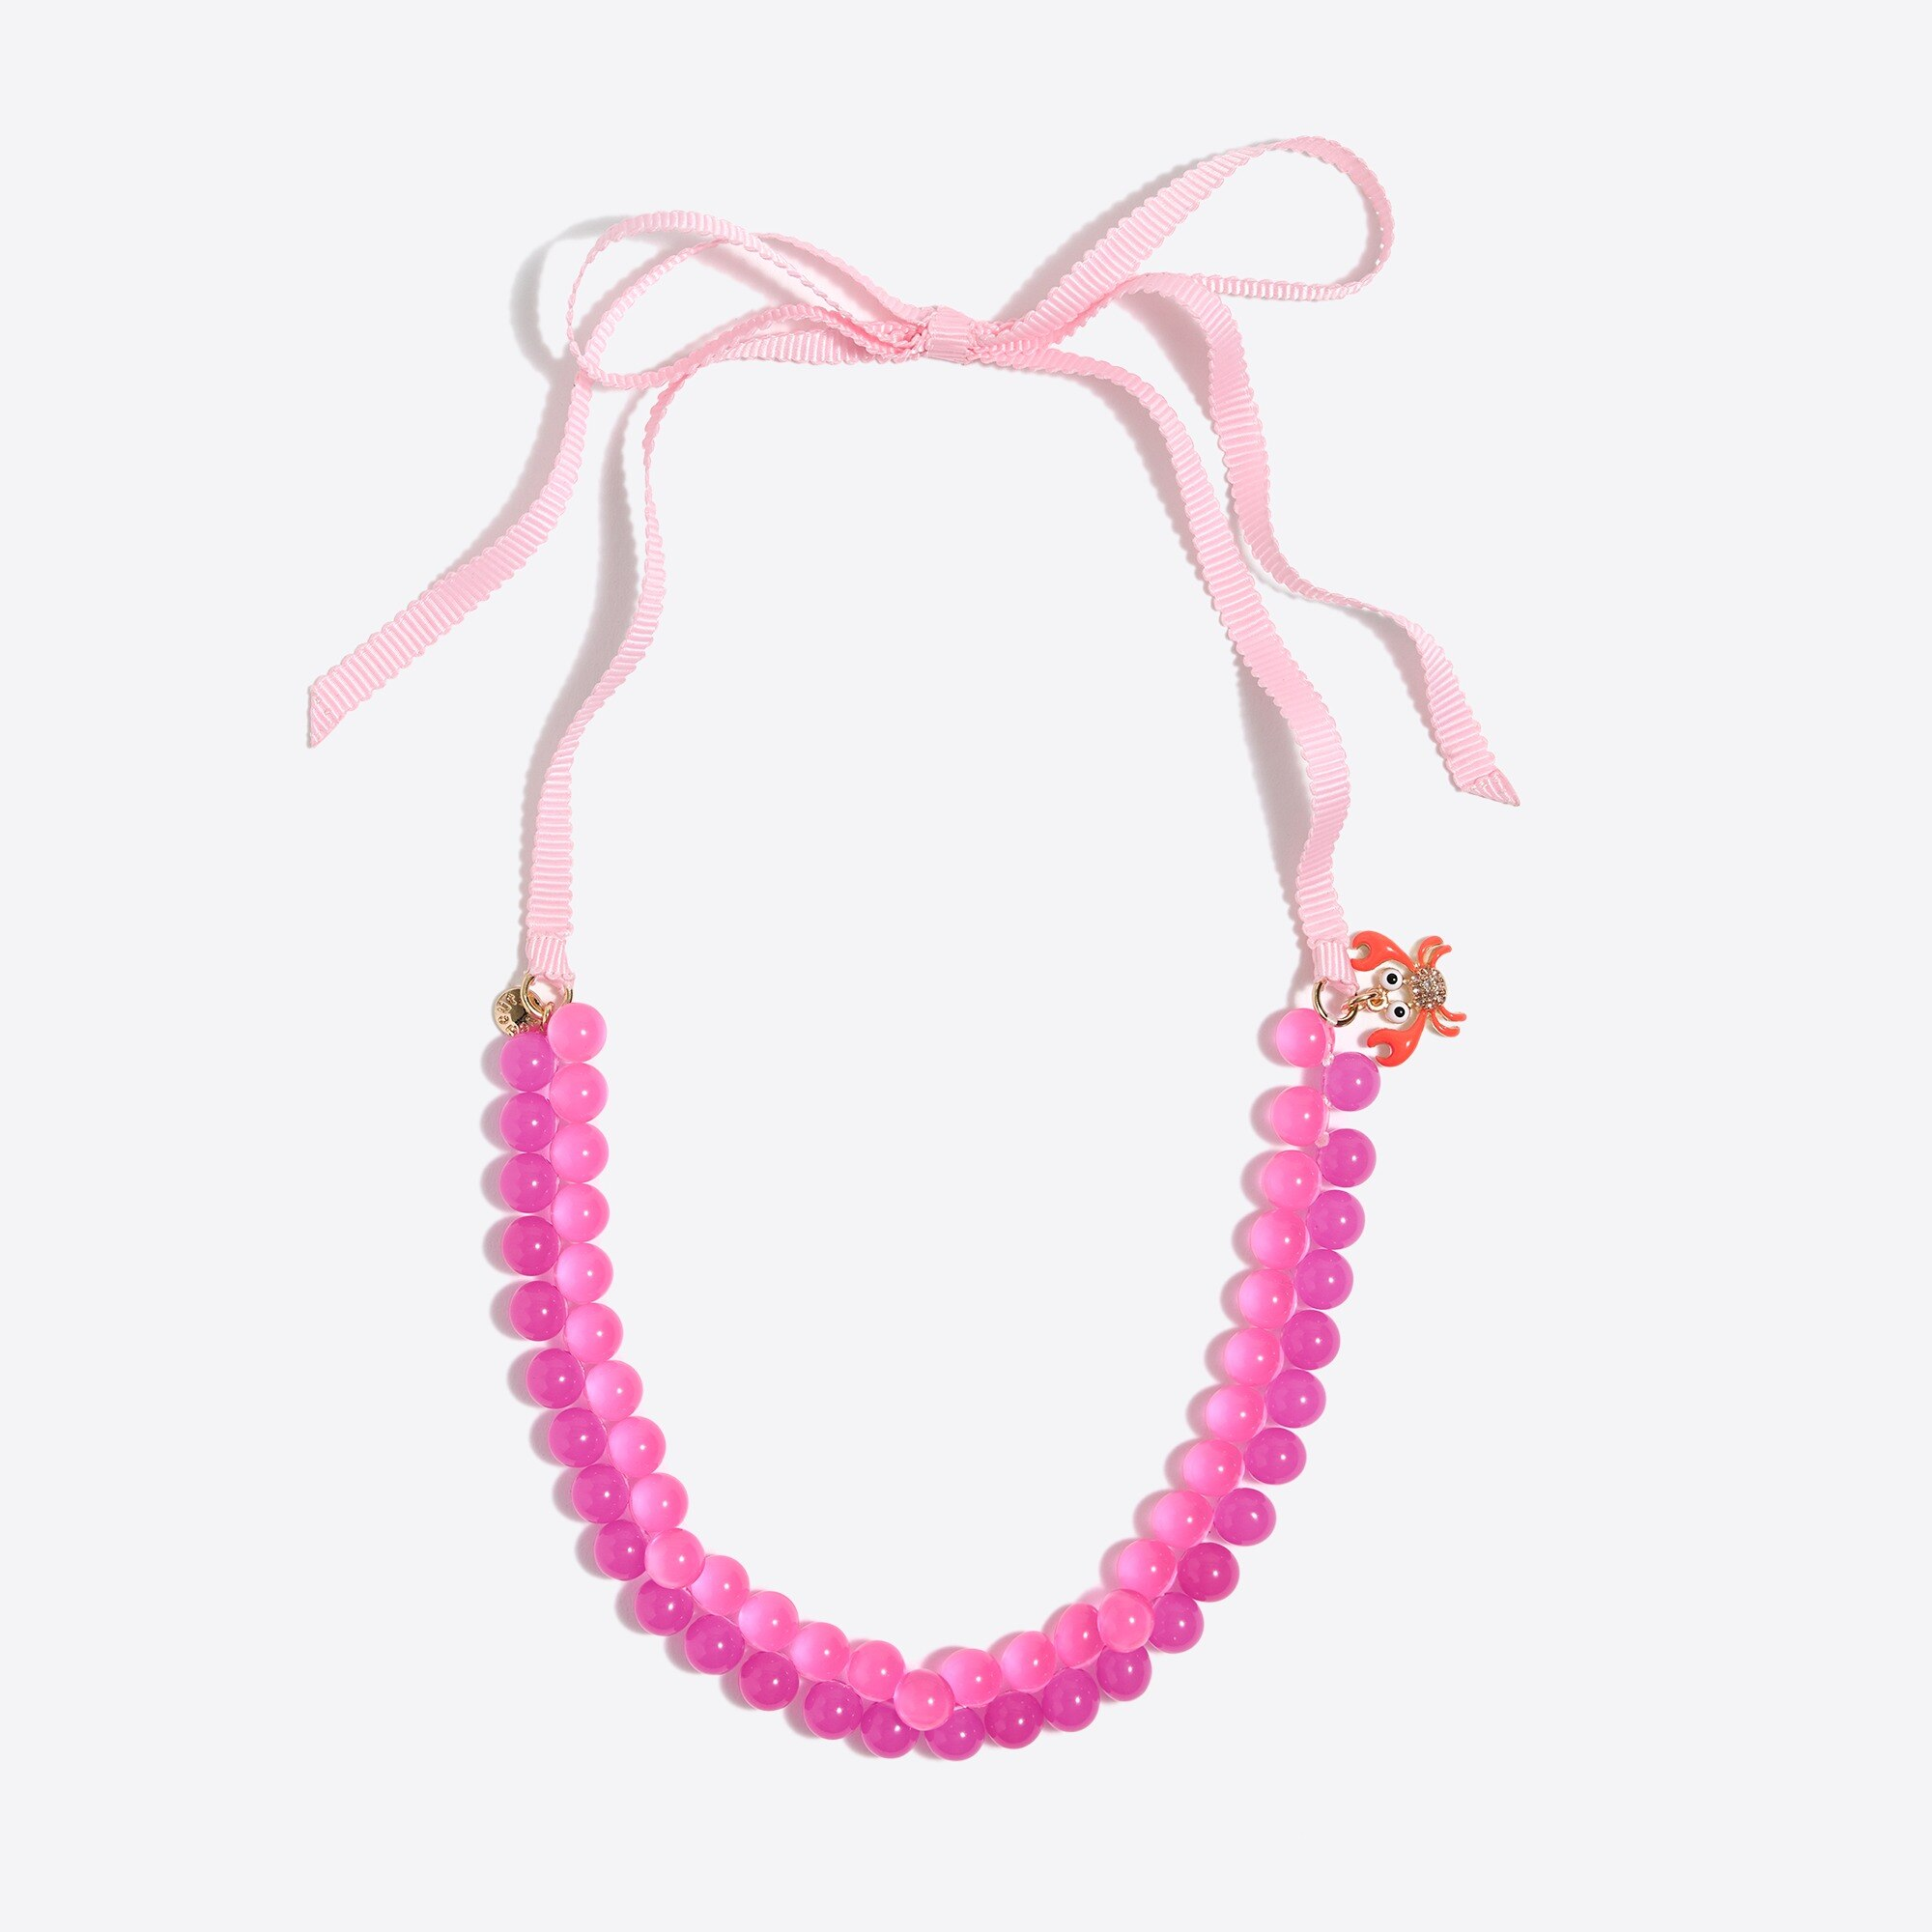 Girls' gumball necklace factorygirls jewelry & accessories c